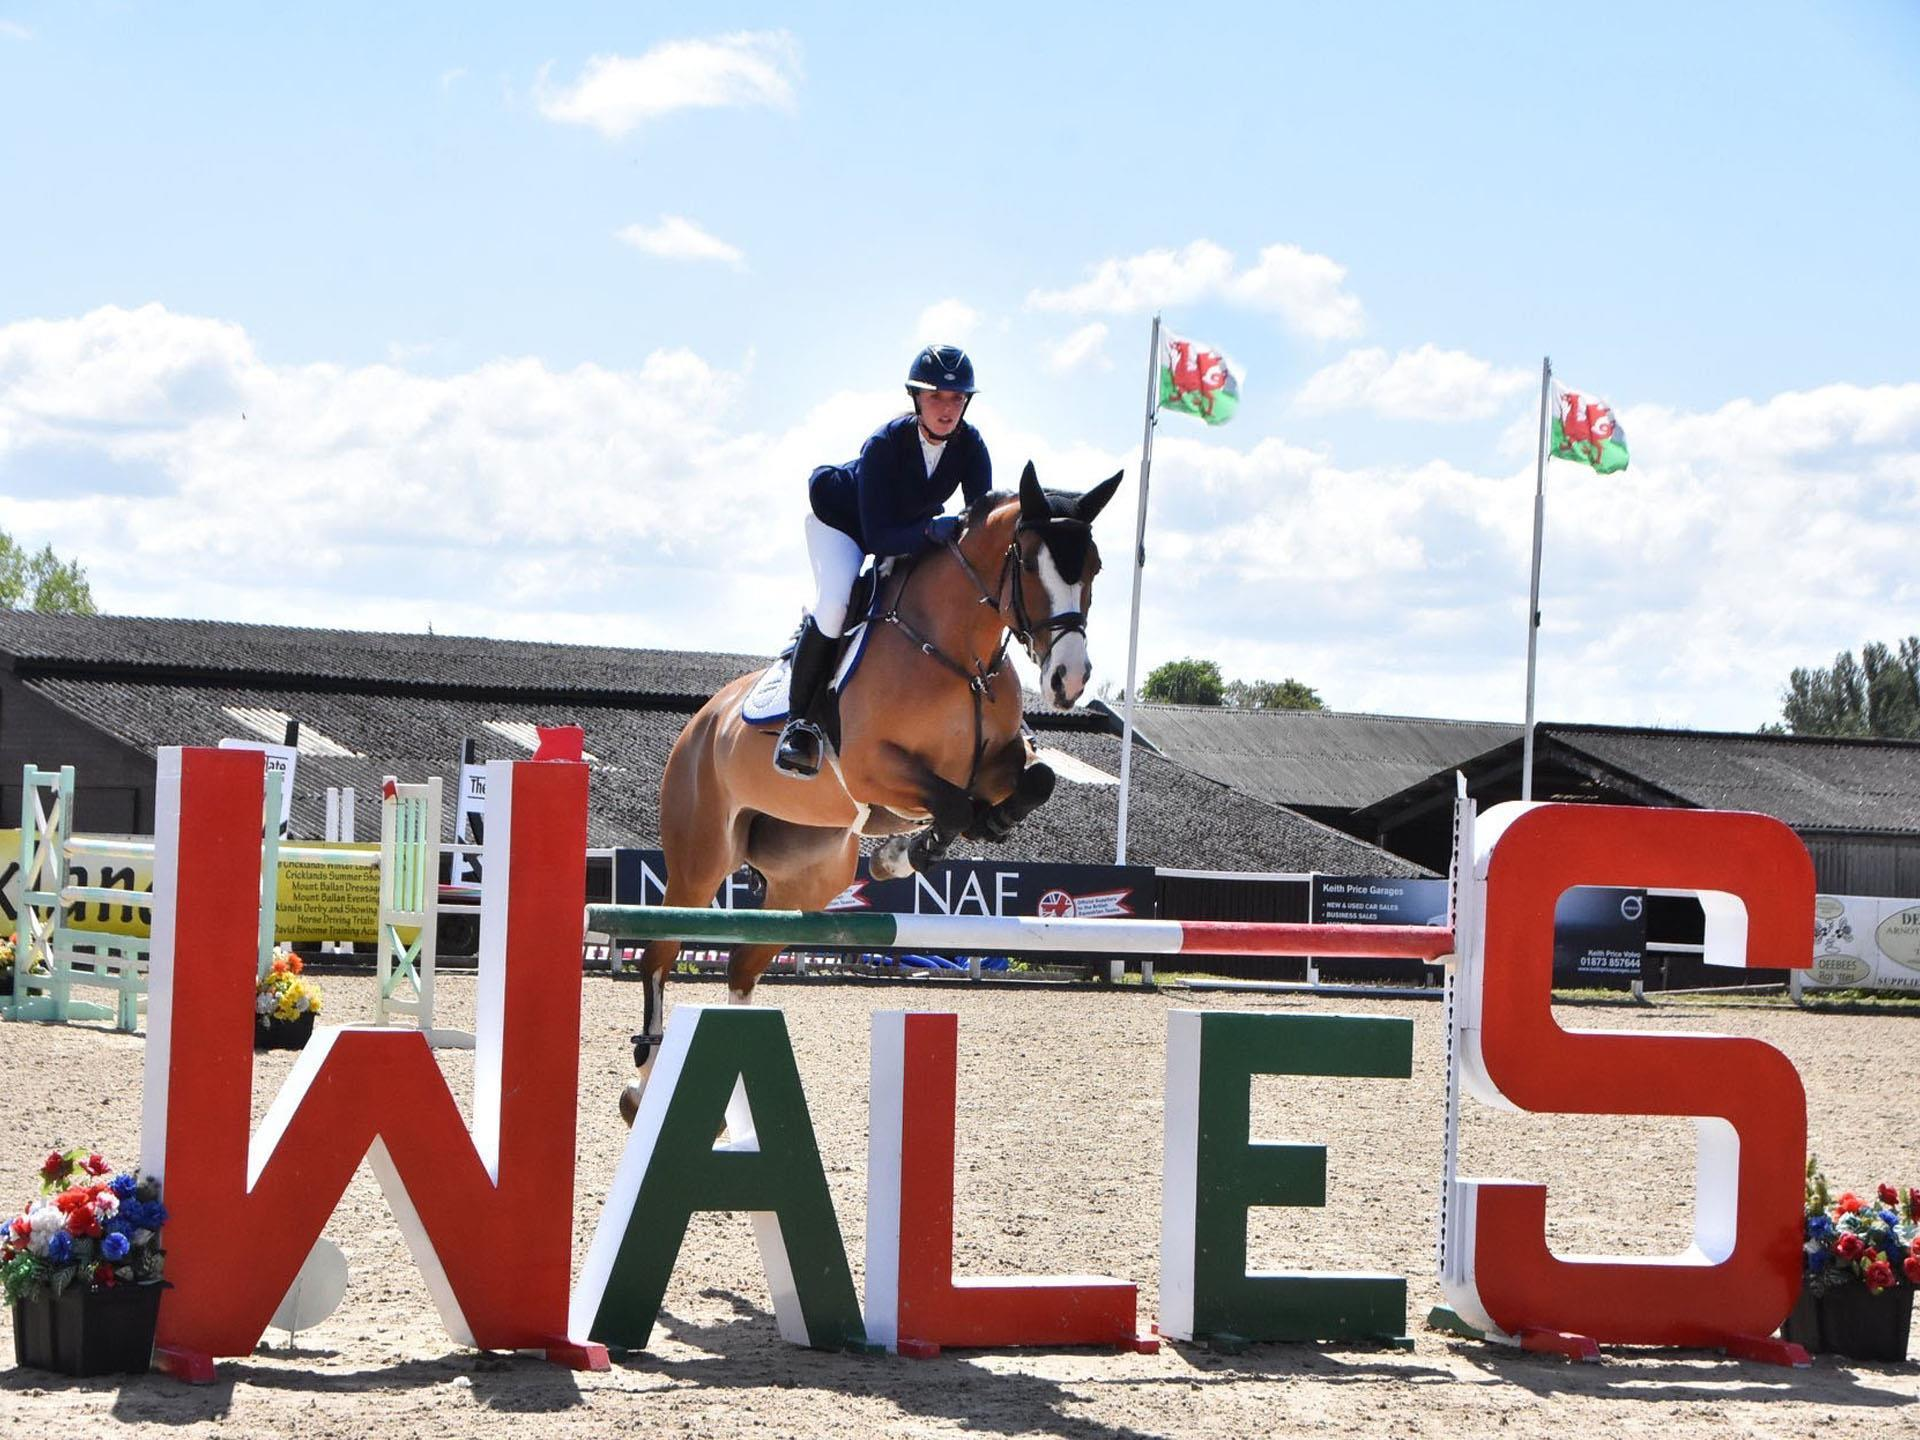 International Rider competing in Wales